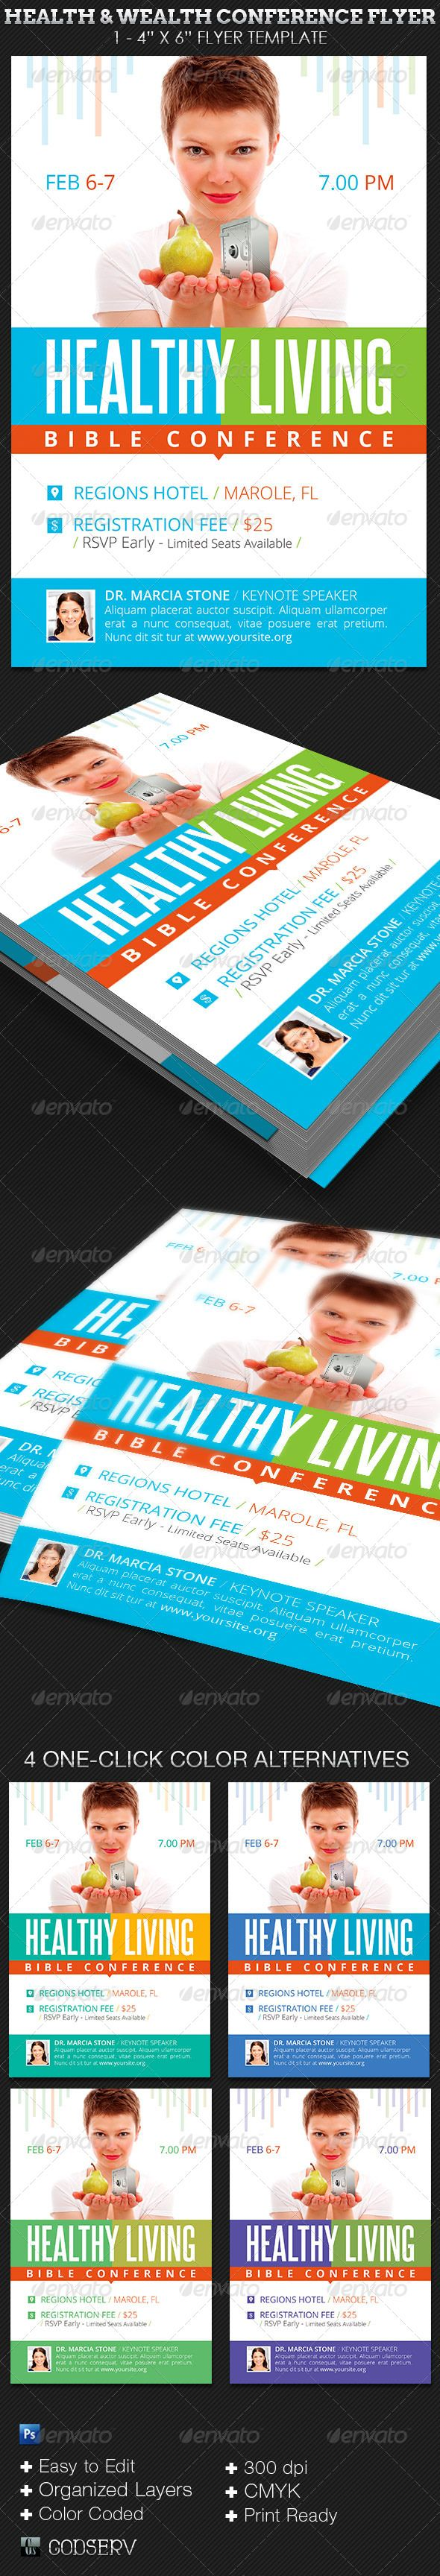 Health Wealth Conference Flyer Template  Church Flyers  Church